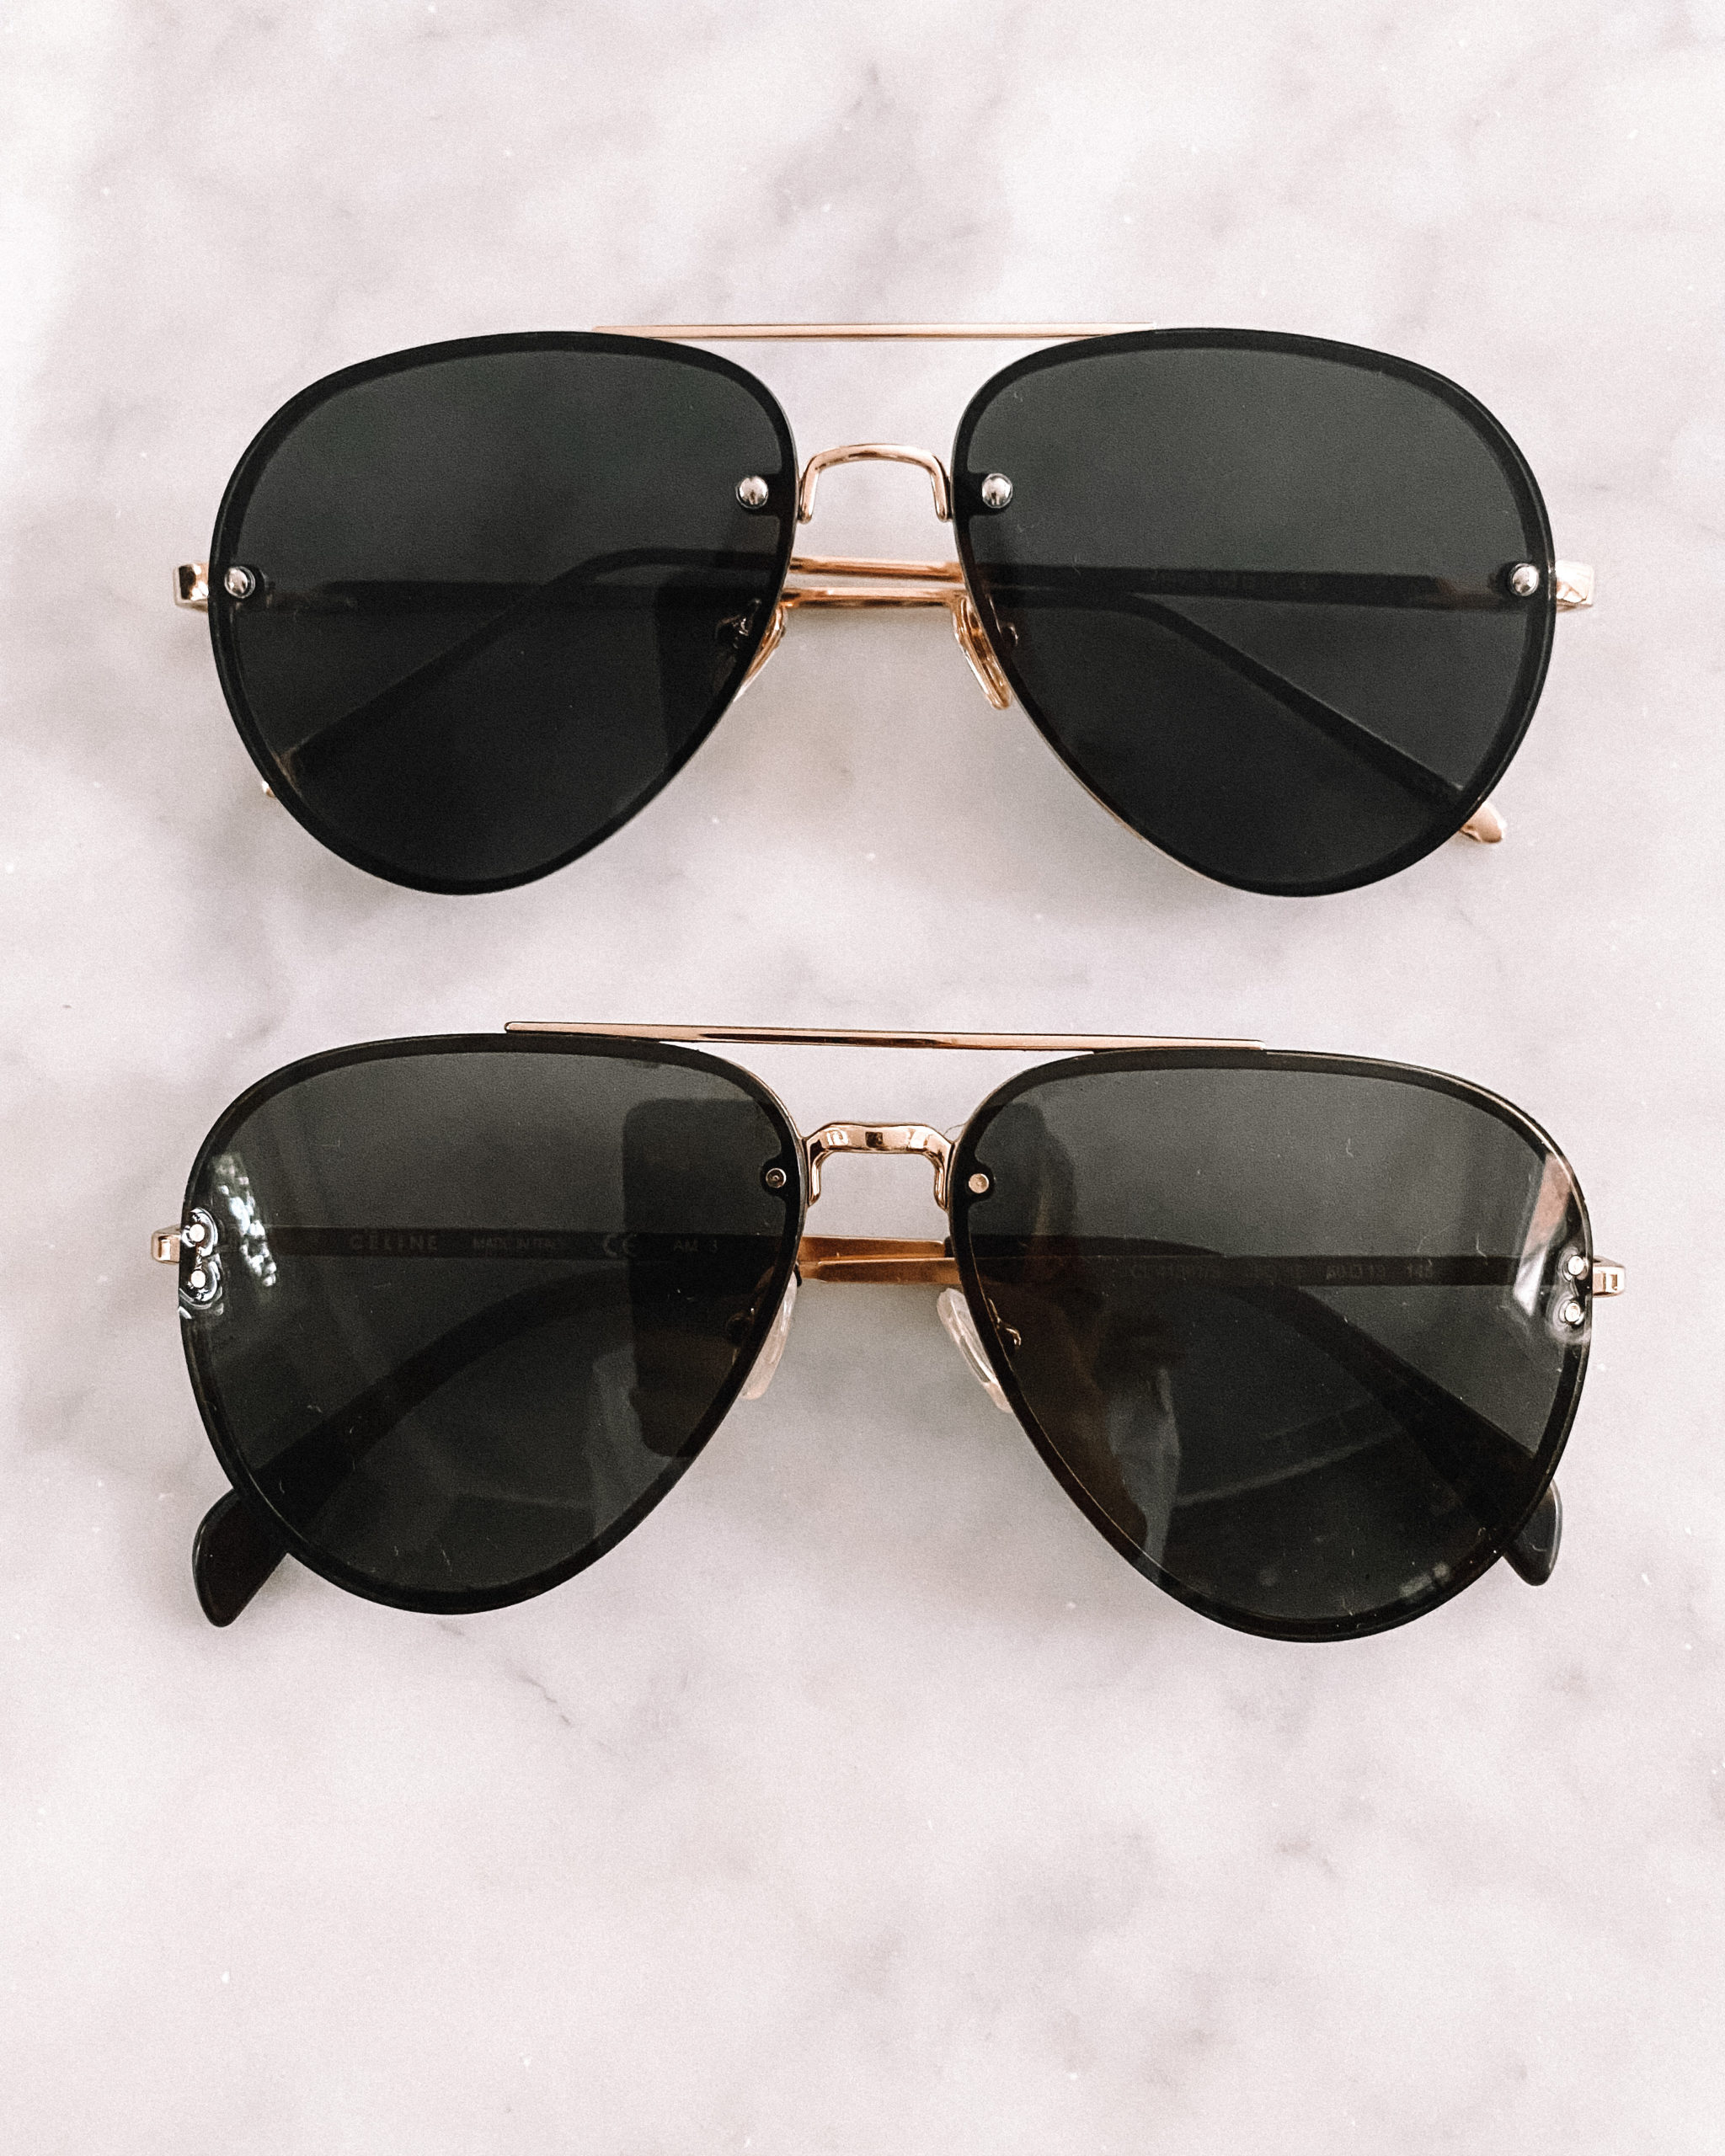 Fashion Jackson Amazon Aviator Sunglasses